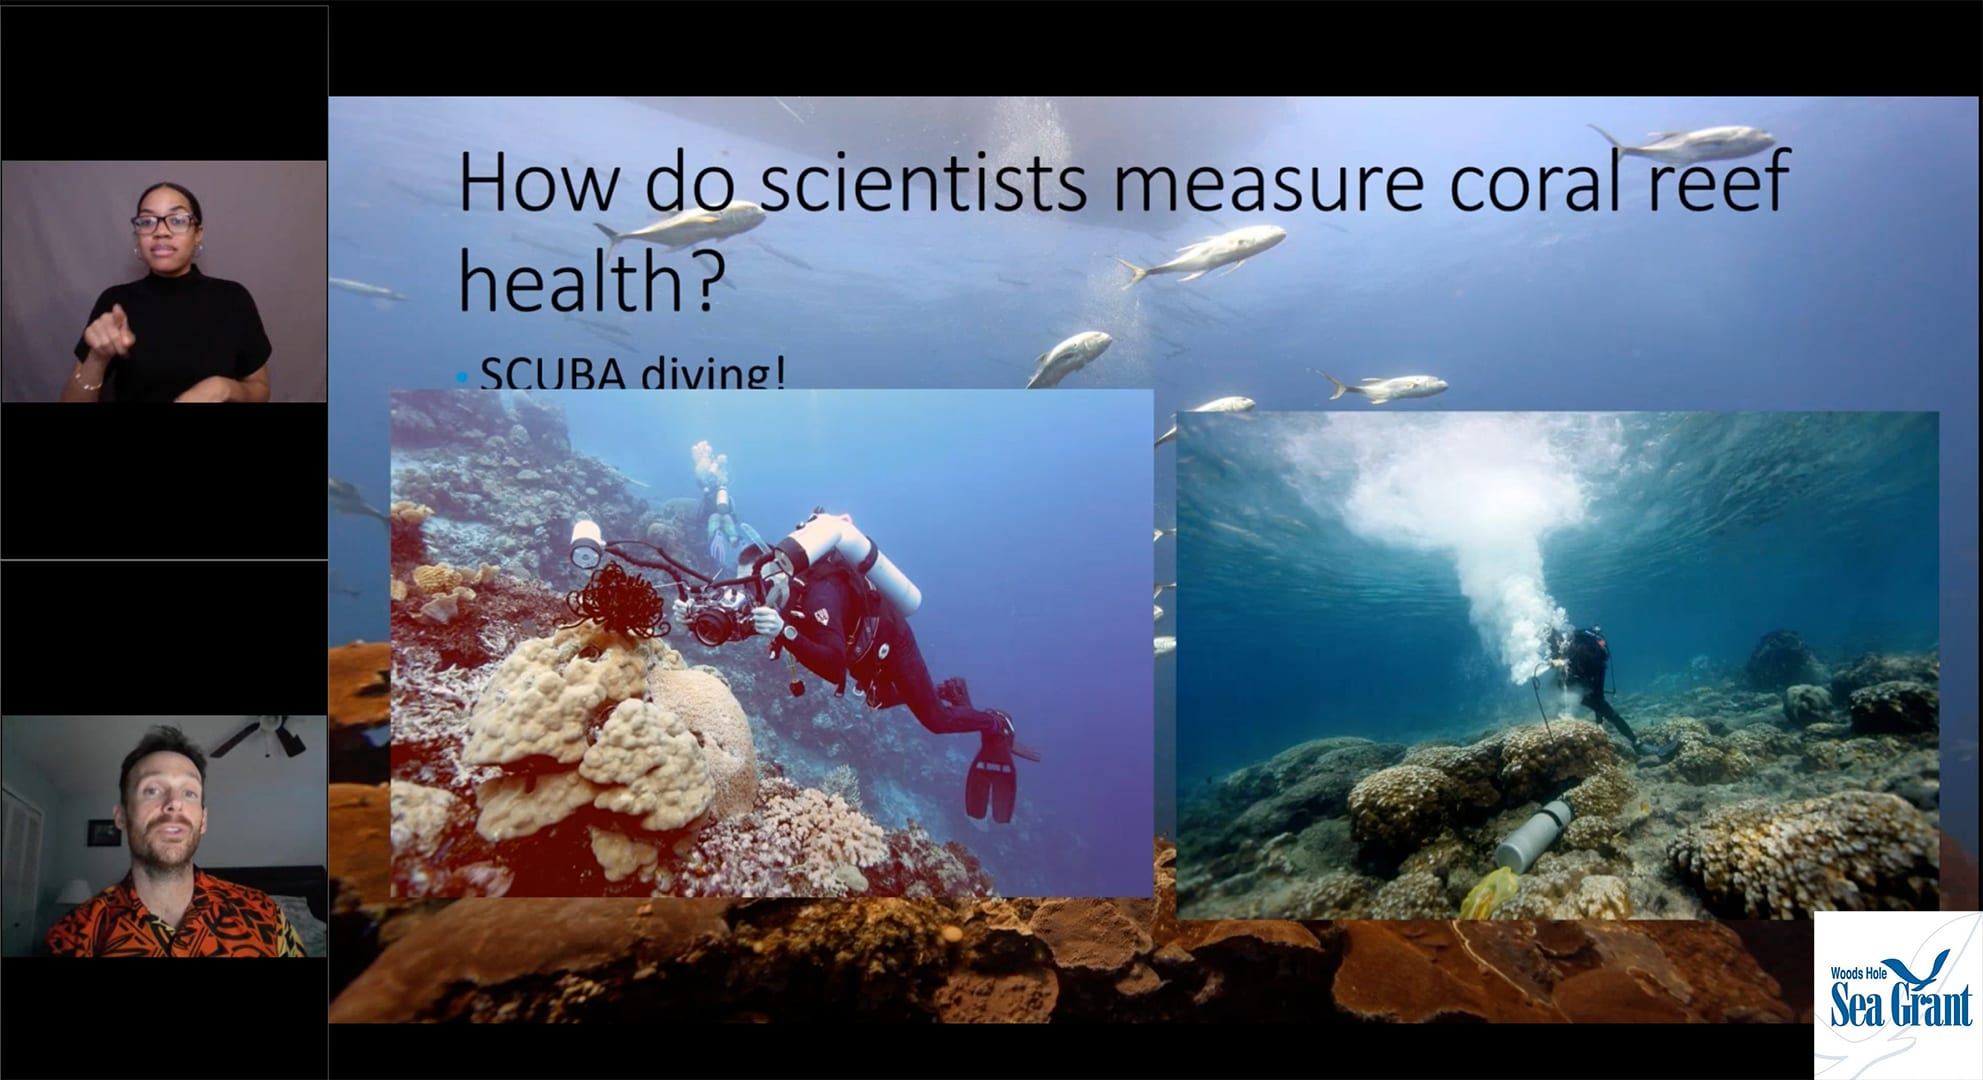 NOAA Live! Saving Corals: A Day in the Life of a Coral Reef Scientist